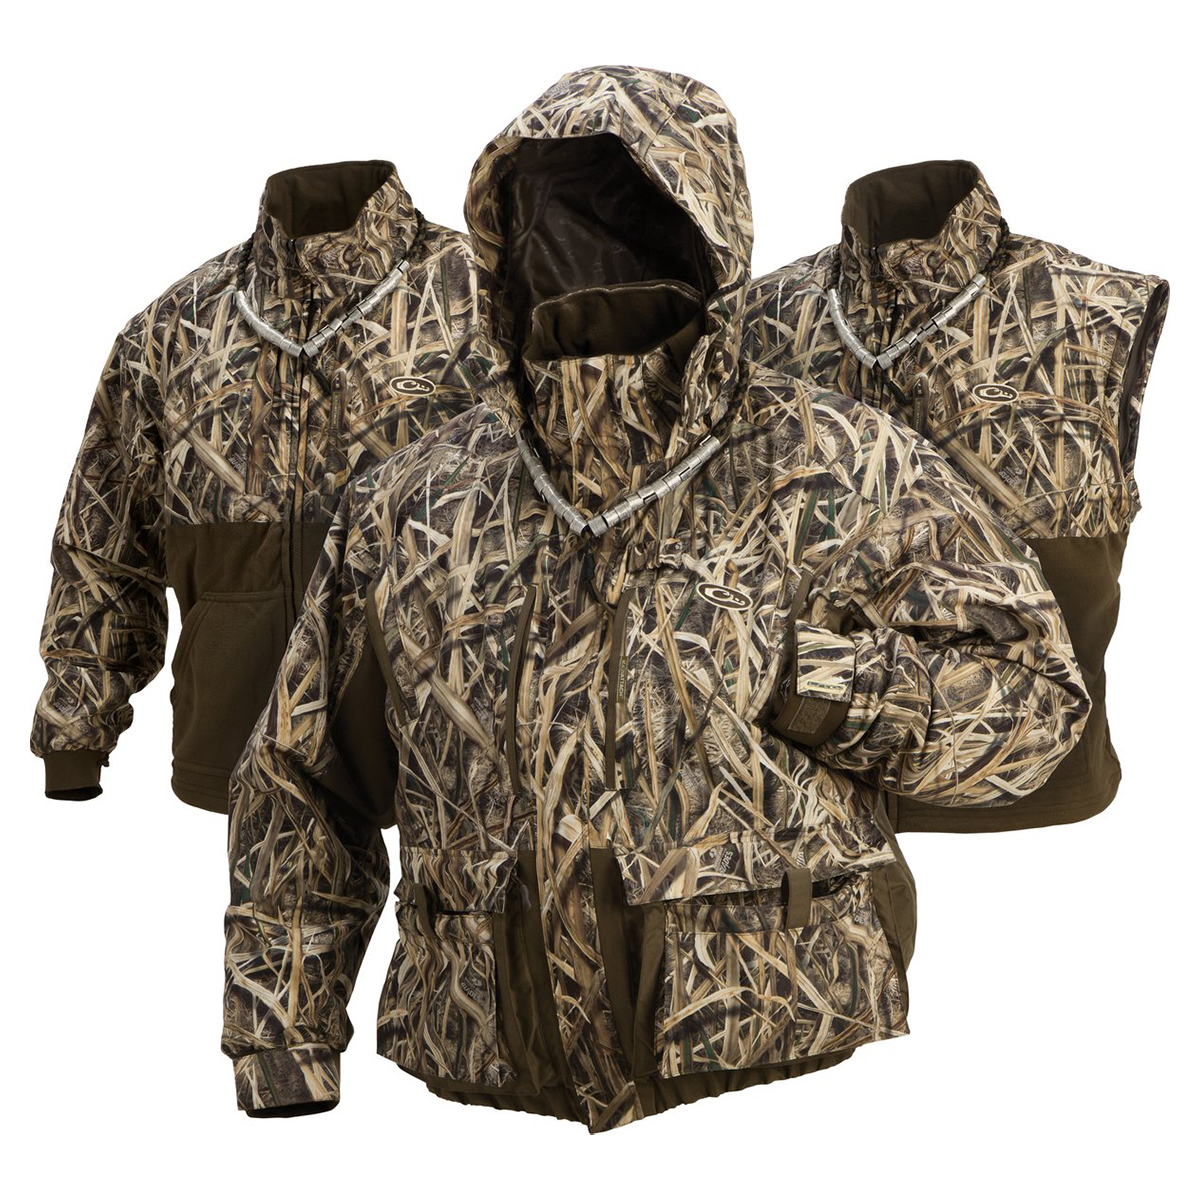 Combo-Drake-Waterfowl-Eqwader-3in1-plus2-big-tall-bigcamo-system